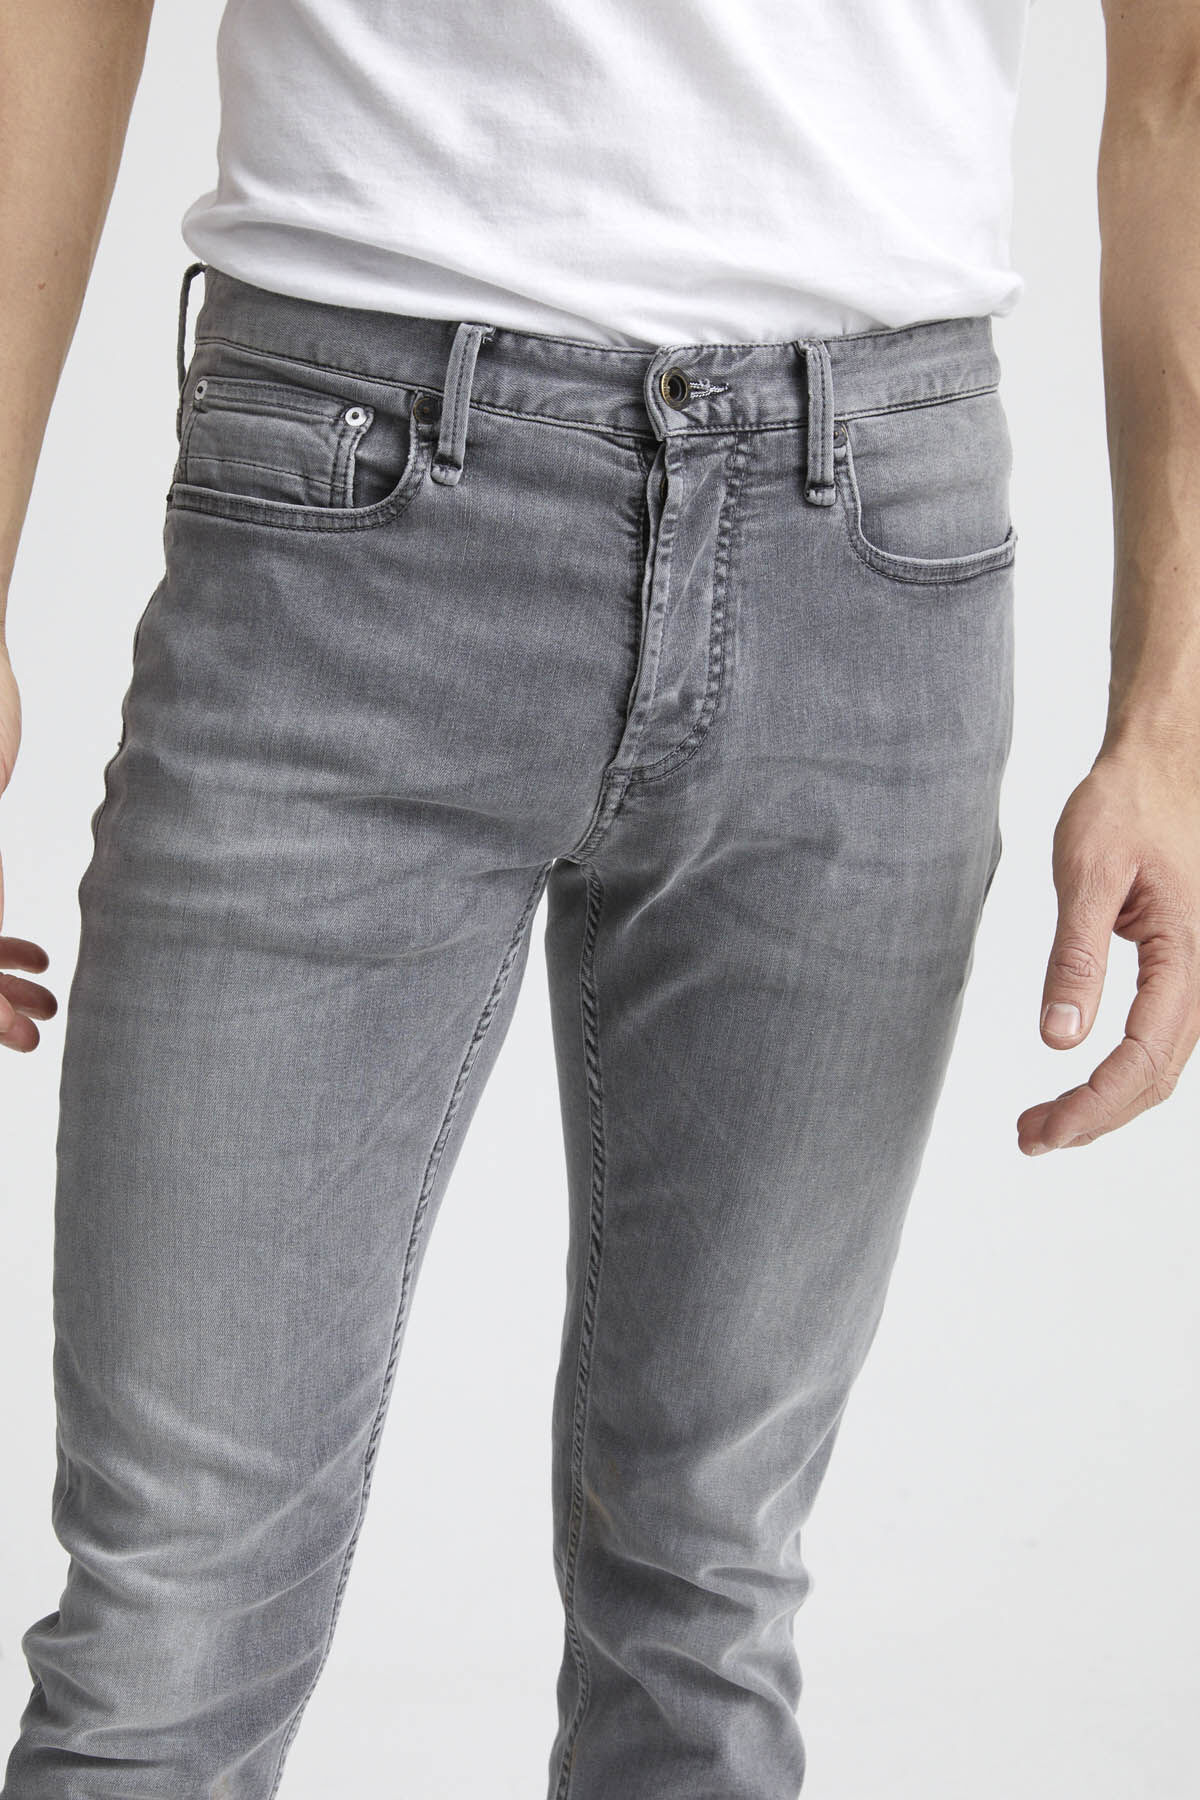 RAZOR Grey Soft Fade Denim - Slim Fit